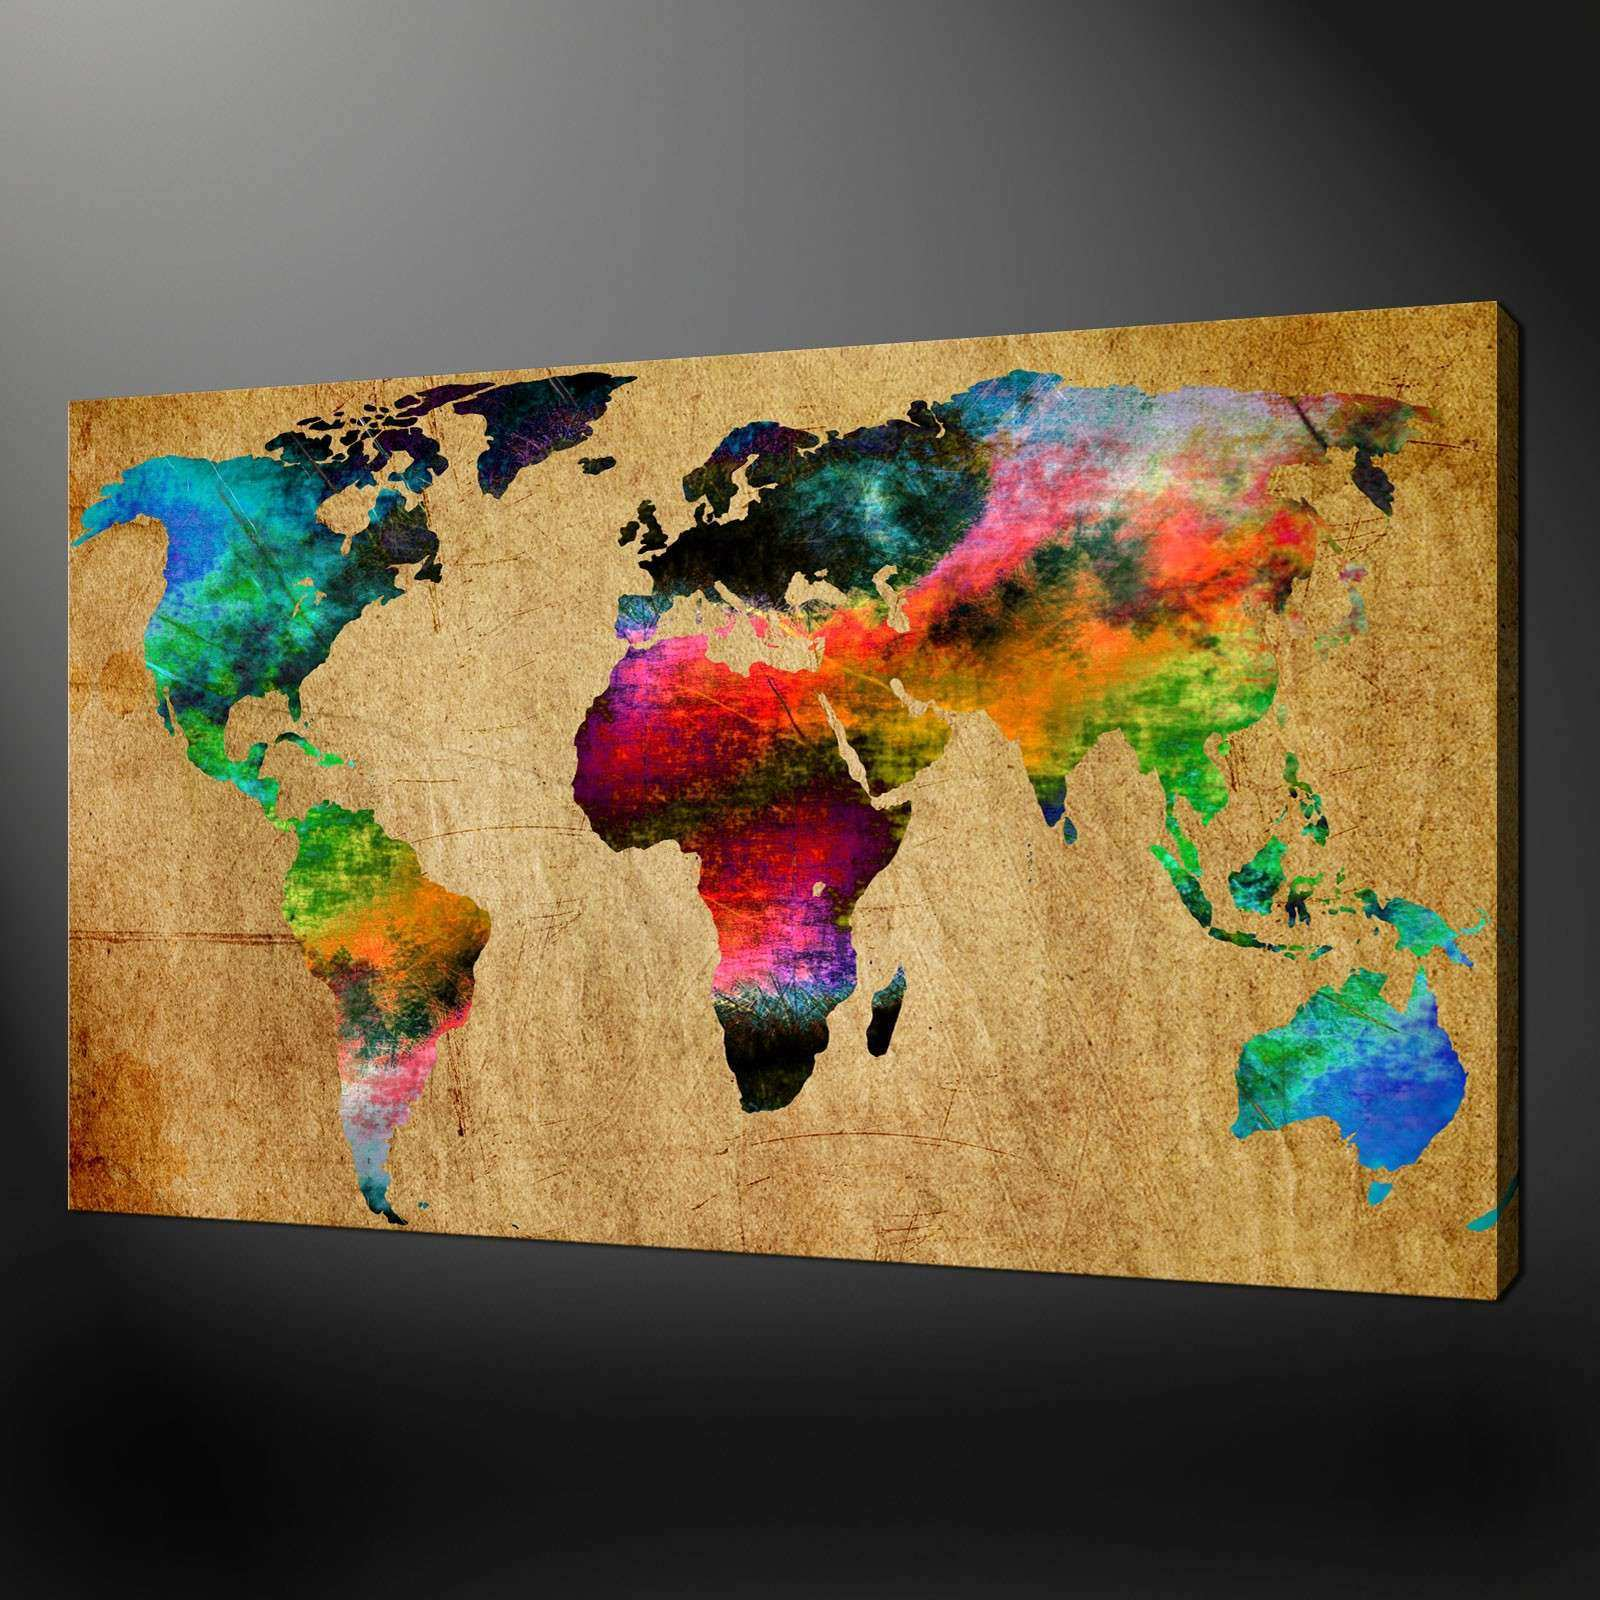 World map canvas wall art unique world map canvas wall art picture world map canvas wall art unique world map canvas wall art picture print gumiabroncs Image collections